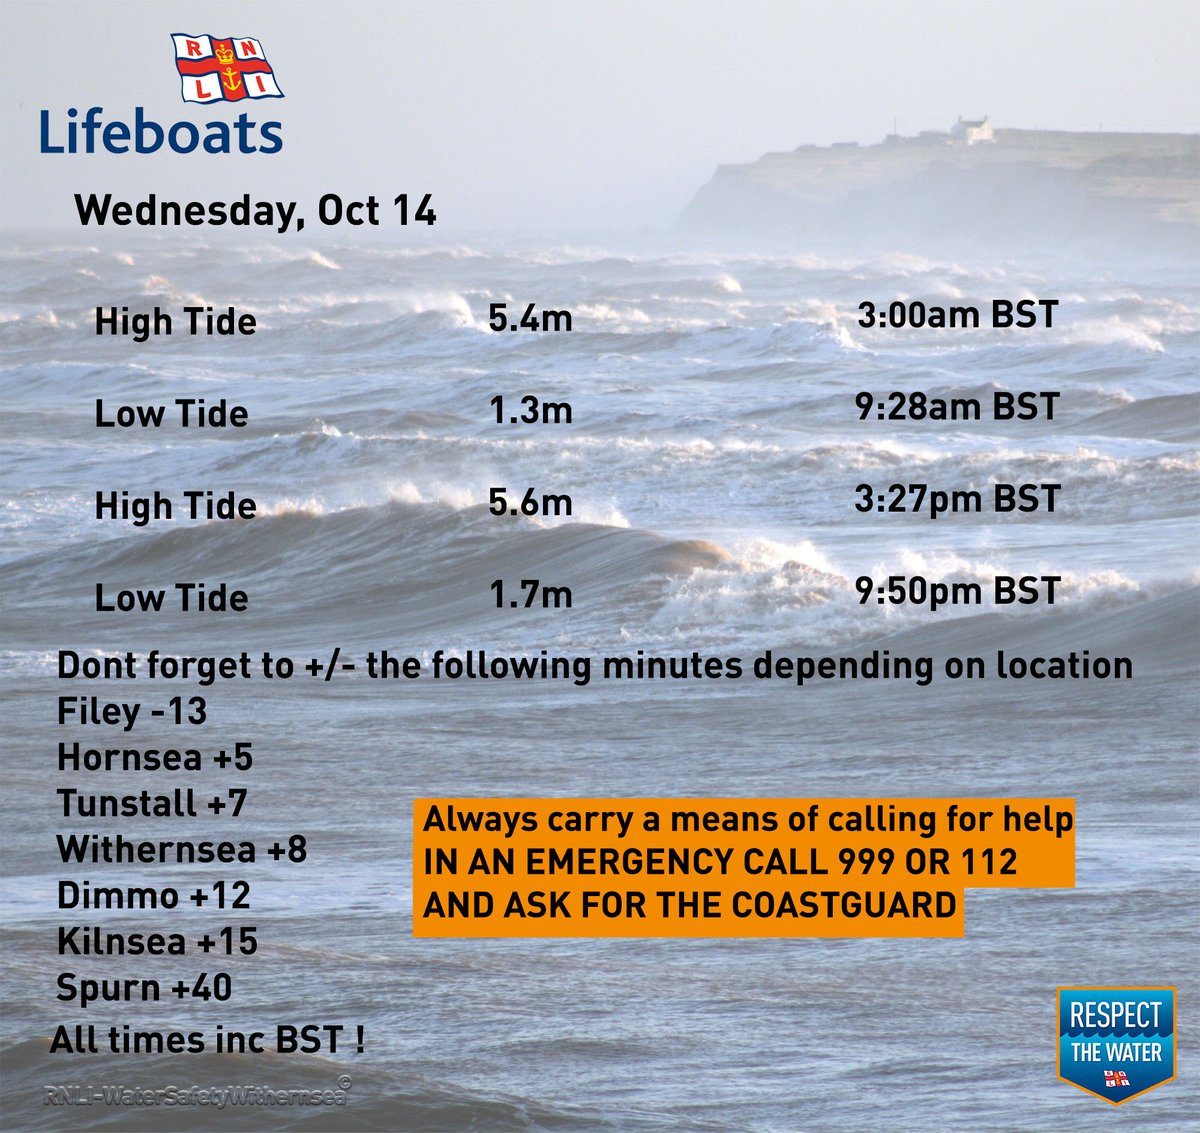 Wednesday Oct 14 2020🌊⏲️ #RespectTheWater #BeWaterAware #BeBeachSafe #TideTimes #WaterSafety #Withernsea https://t.co/NvSALAsvtB